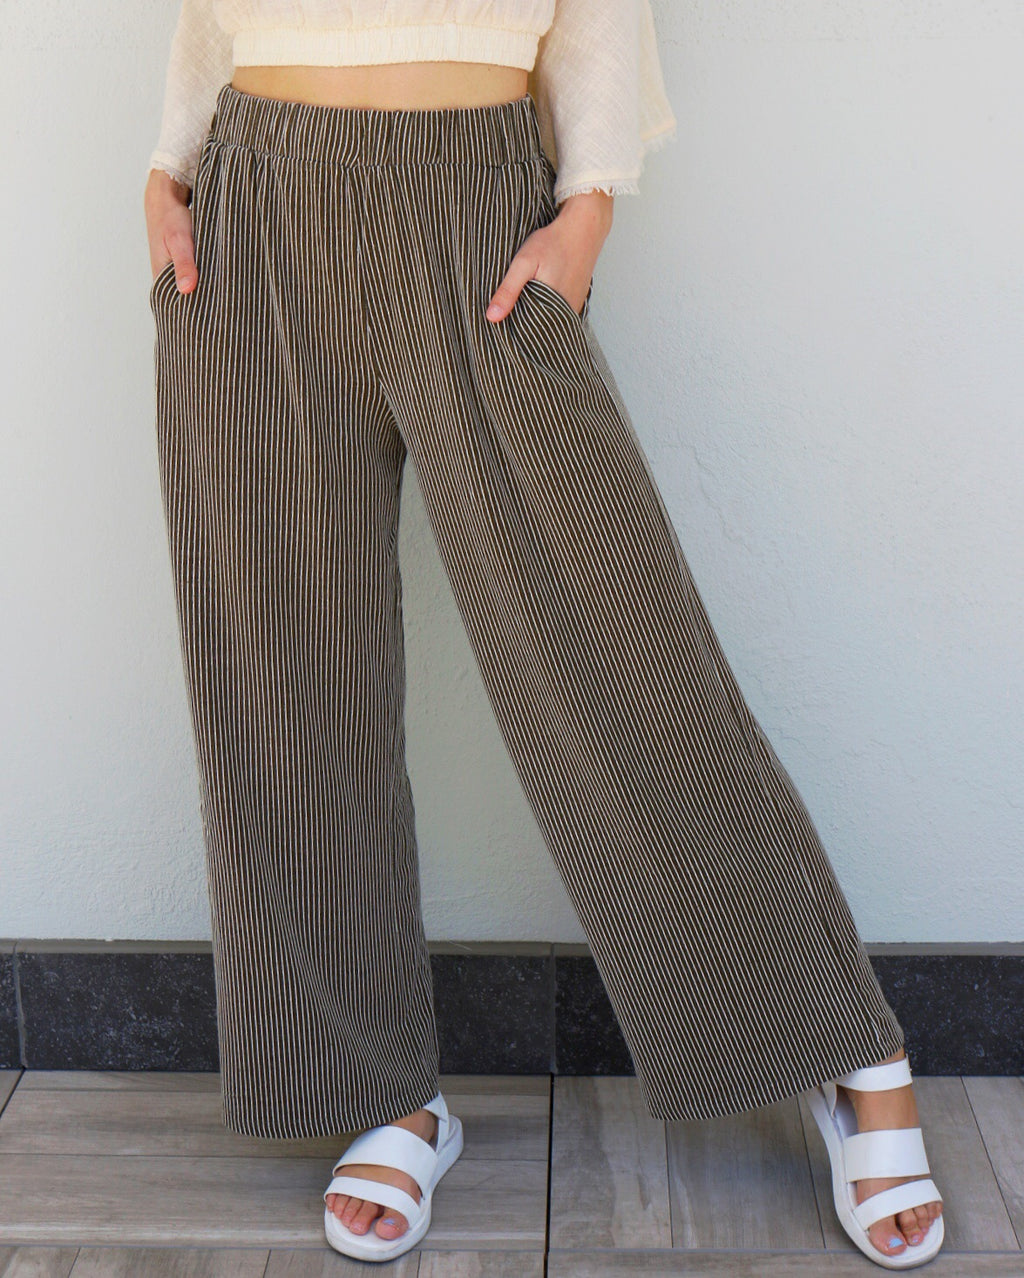 Tate Pants in Olive